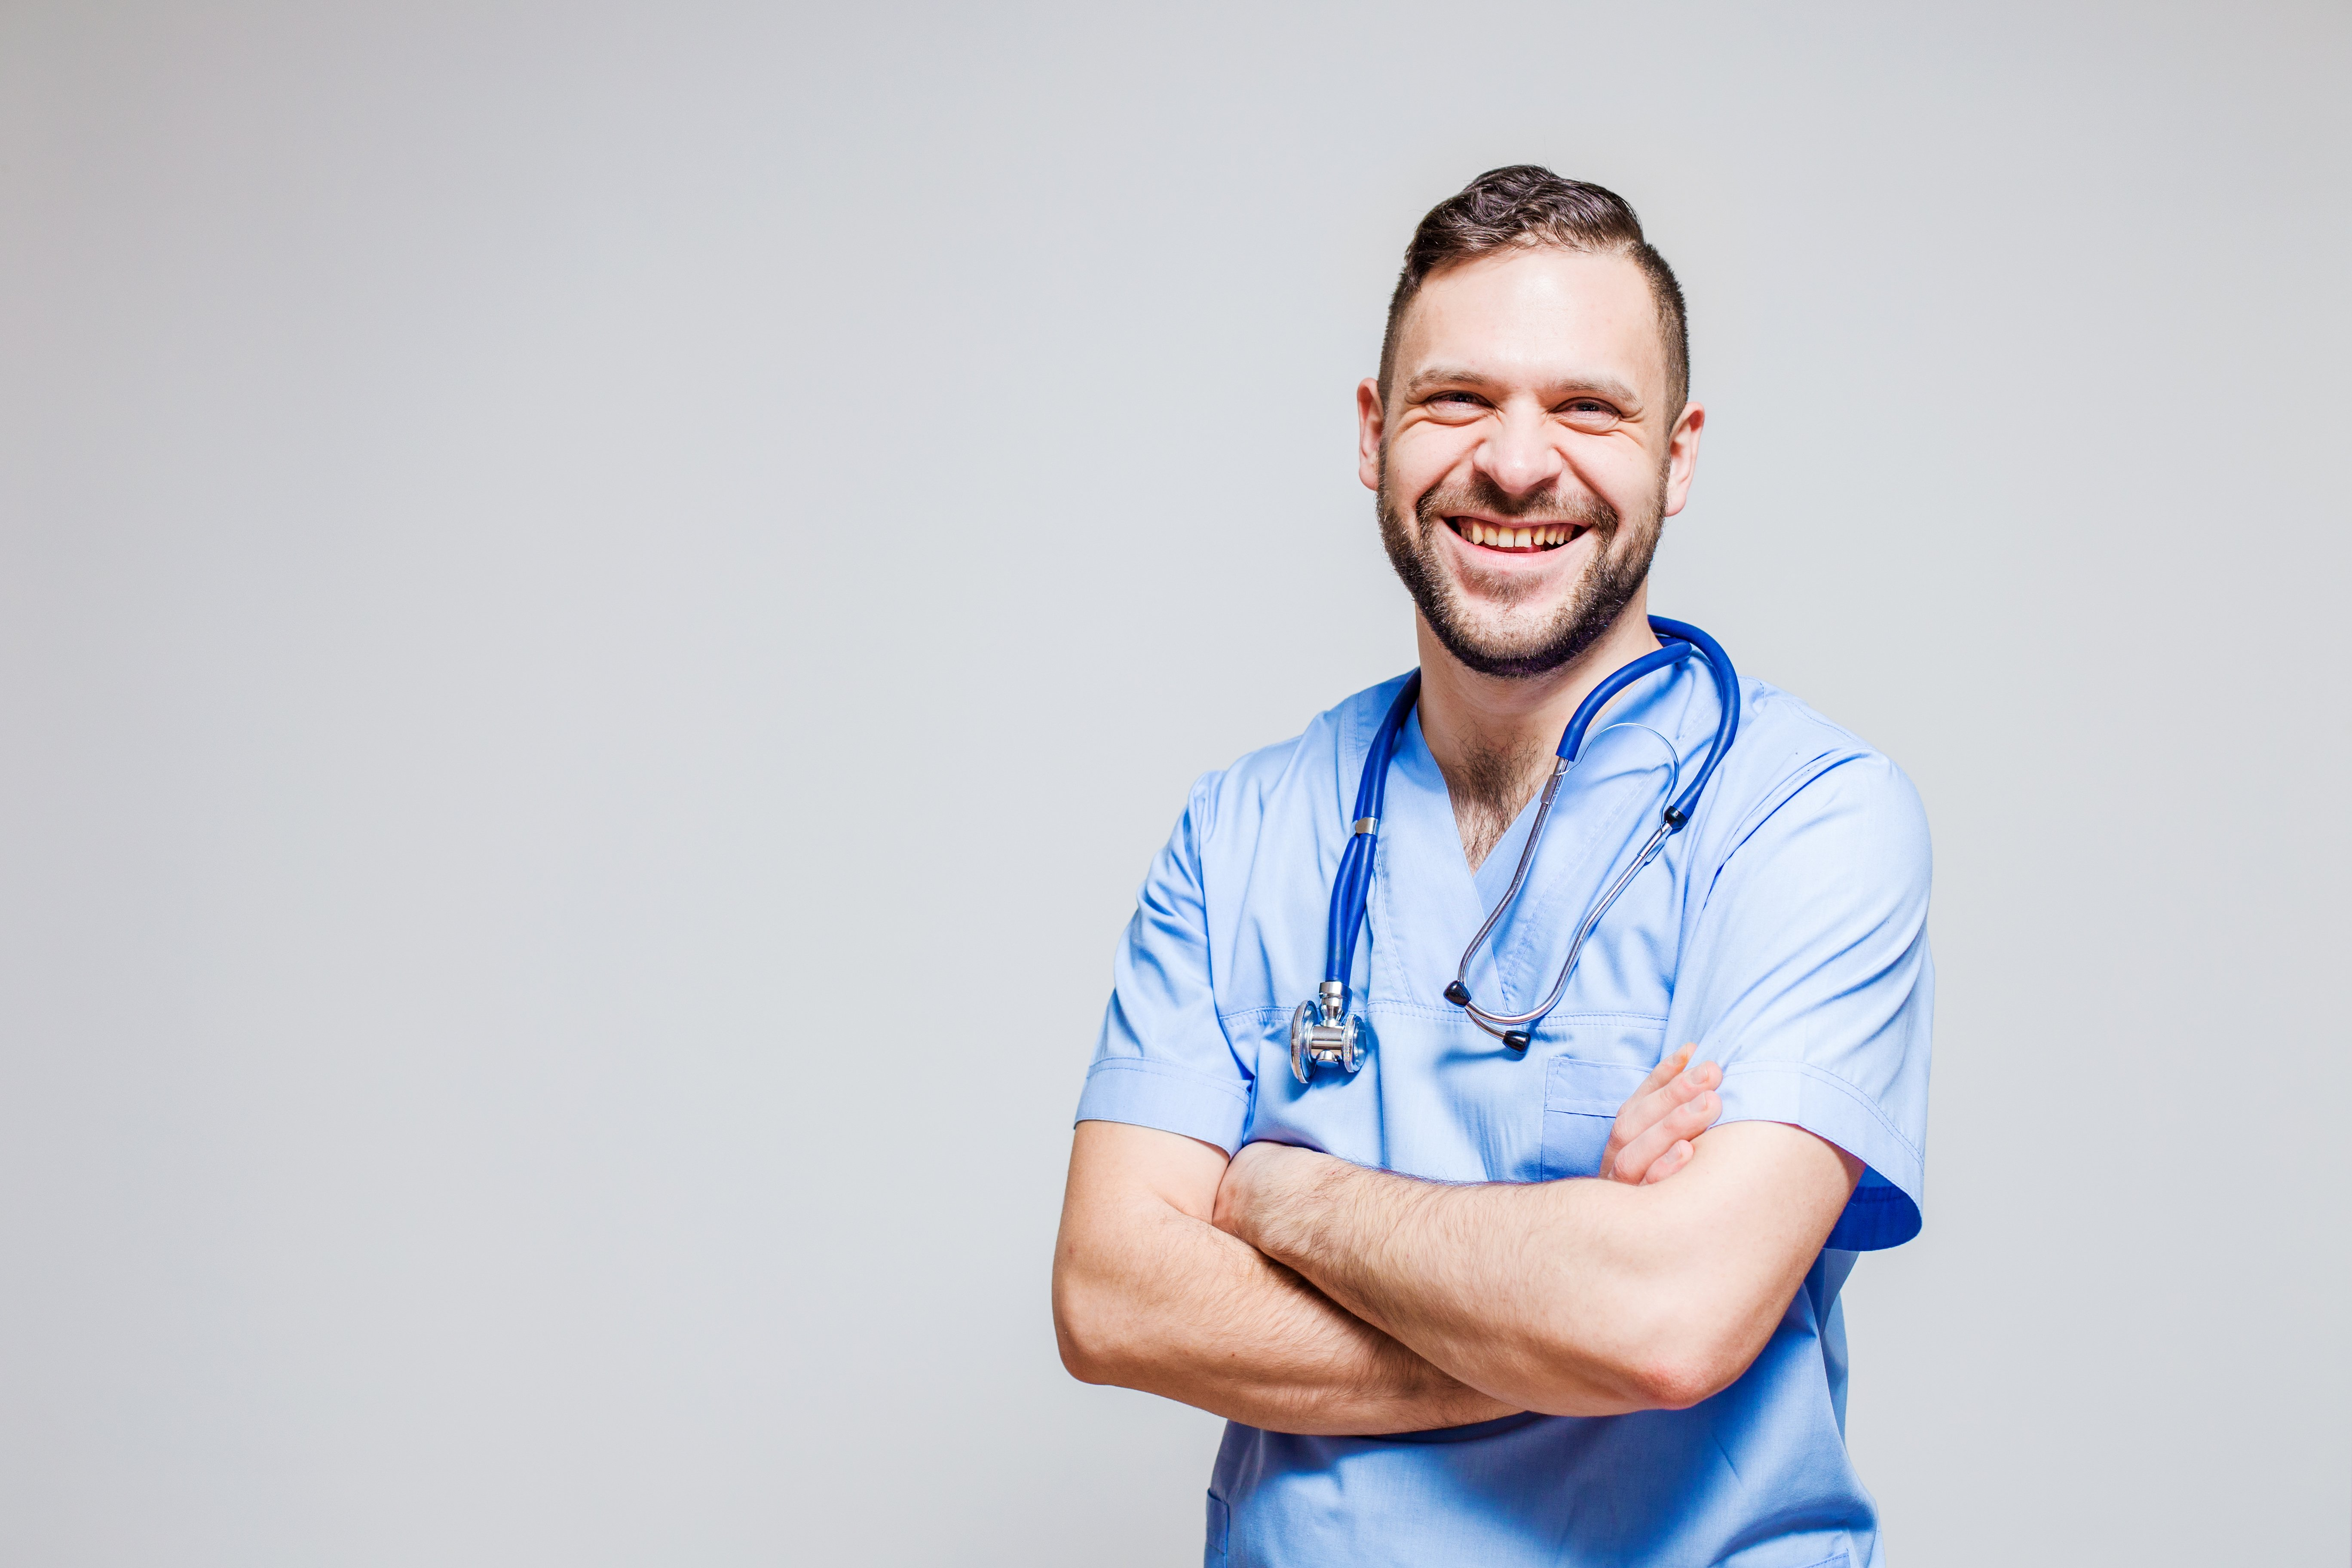 How a BSN Will Make You Earn More and Be a Better Nurse